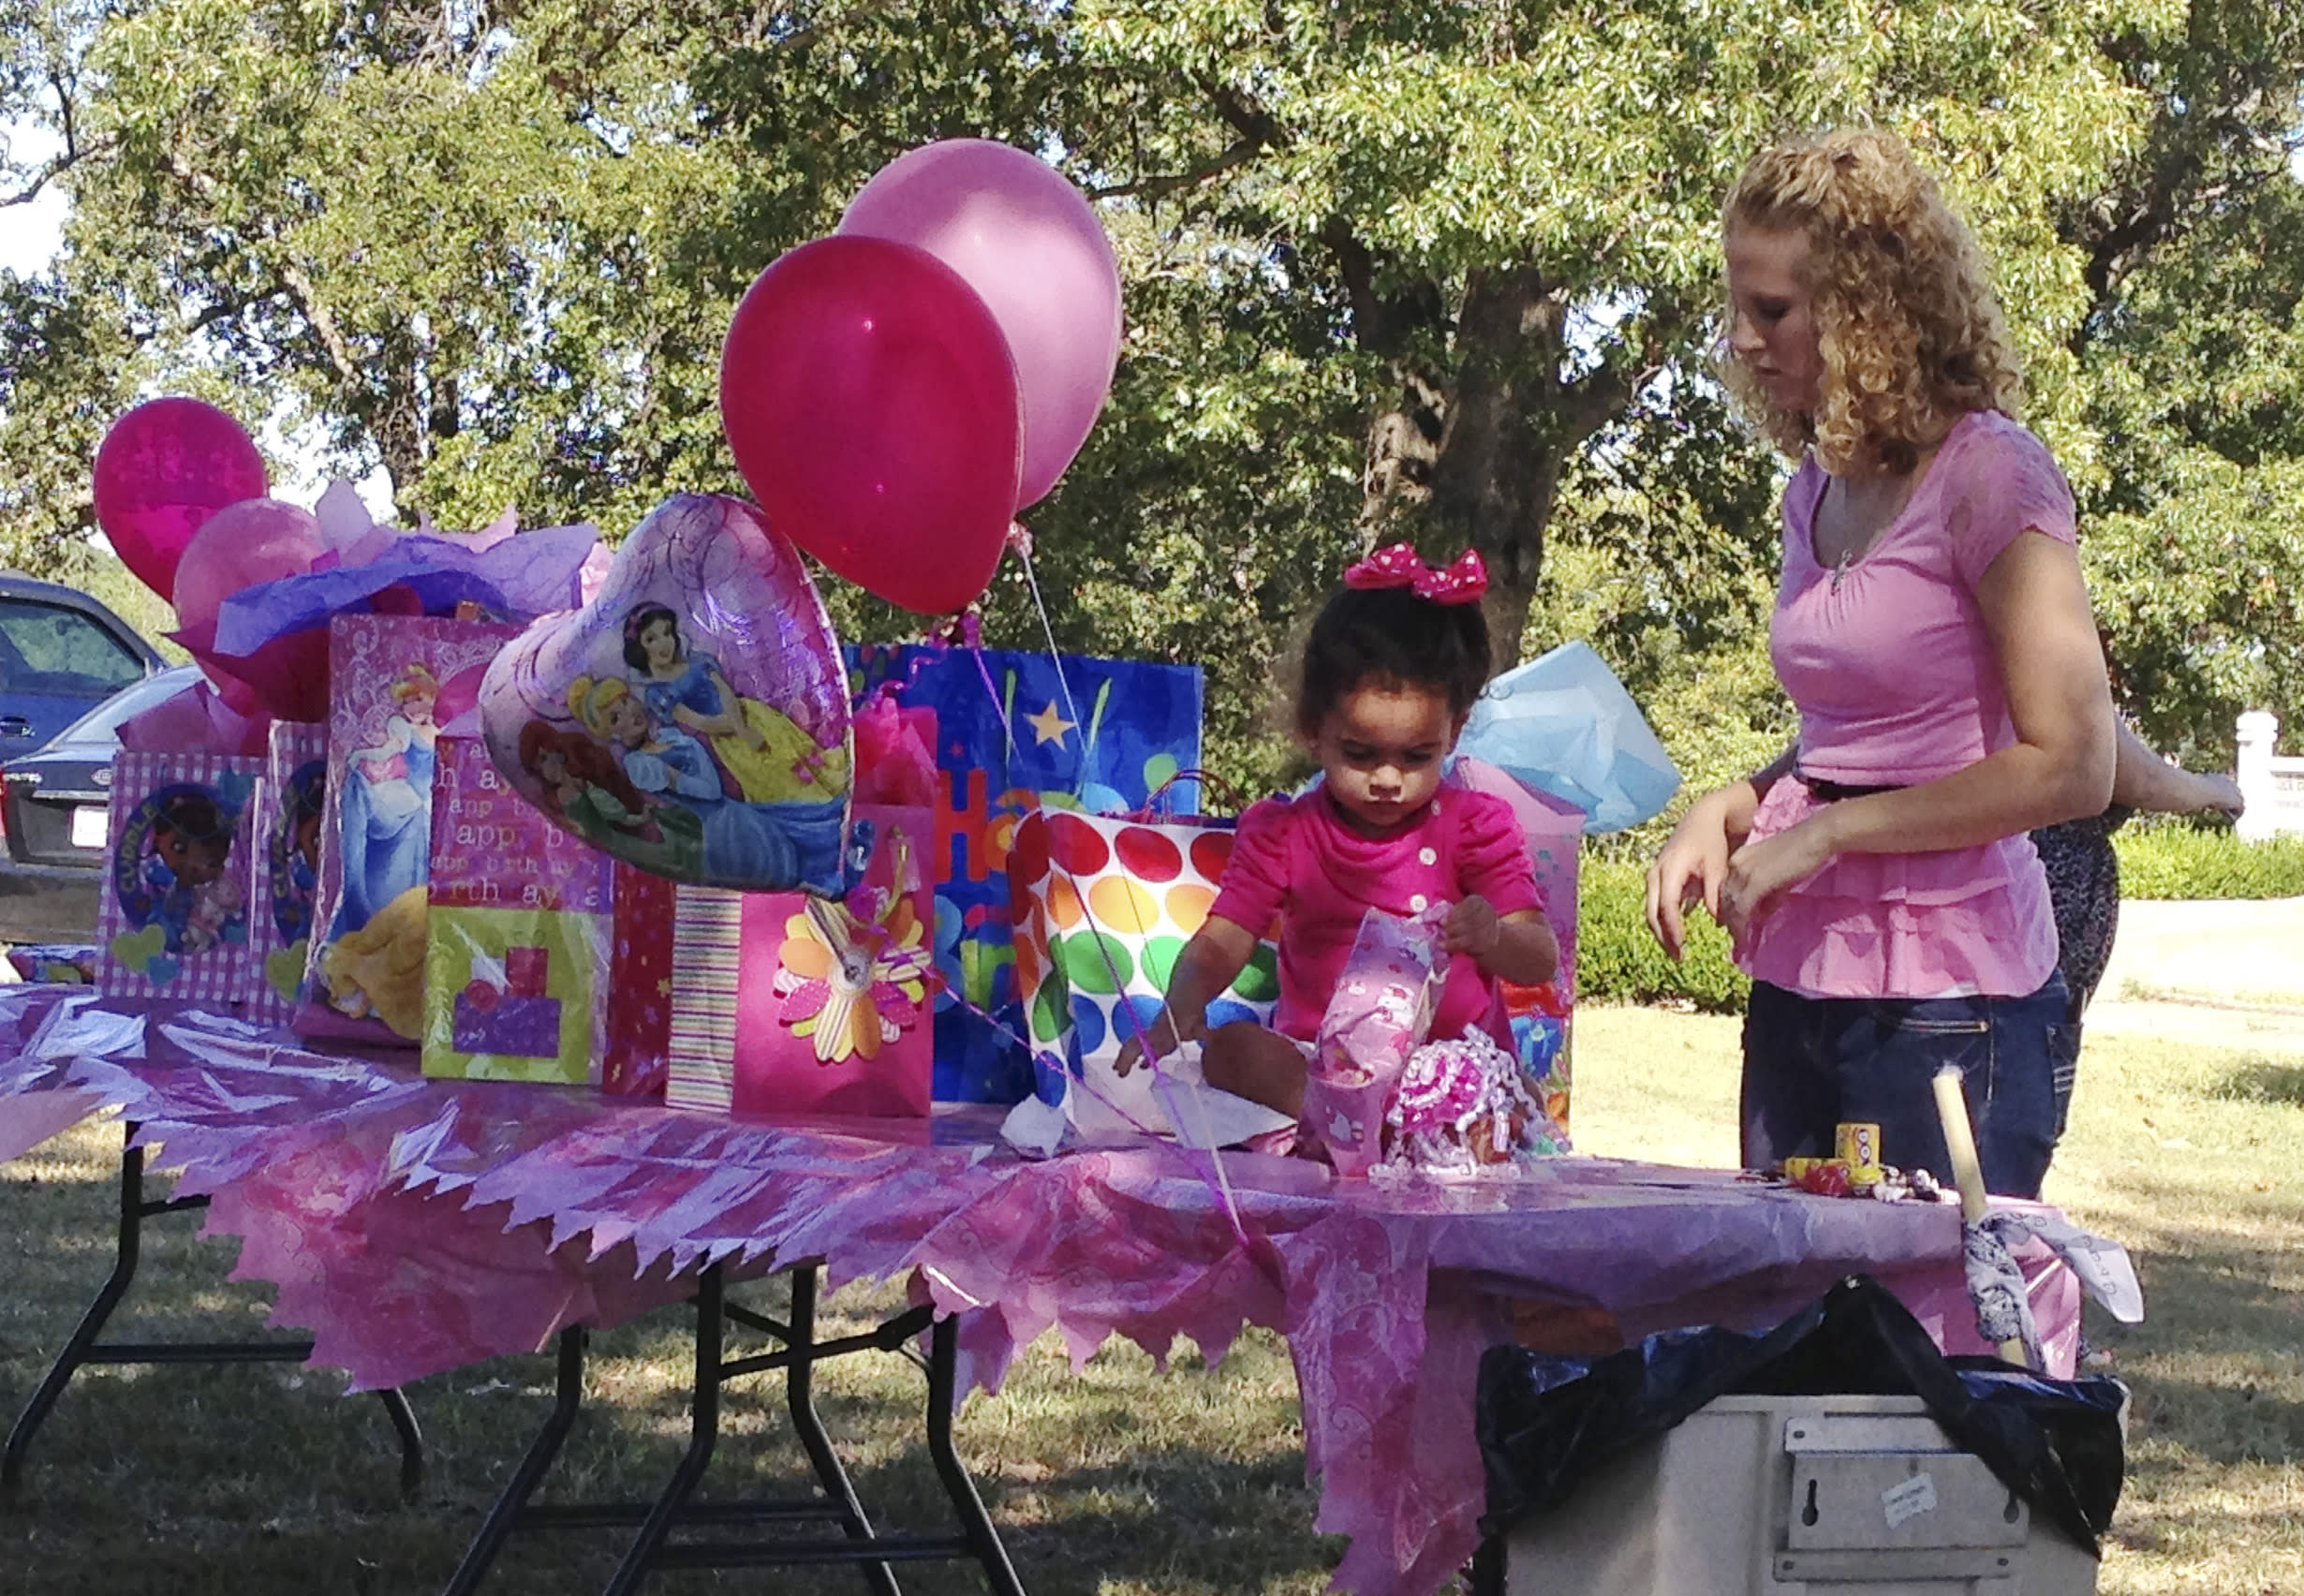 This photo provided by Amanda Clinton of the Cherokee Nation shows four-year-old Veronica, left, with Robin Brown, right, at a birthday party for her in Tahlequah, Okla. The Oklahoma Supreme Court on Monday, Sept. 23, 2013 said it won't intervene in an adoption dispute involving the Cherokee girl and dissolved a court order that was keeping her with her father. It wasn't immediately clear whether Veronica would remain in the Cherokee Nation, where she's been living with her biological father, Dusten Brown, and his family while Brown appealed court orders finalizing her adoption to Matt and Melanie Capobianco of South Carolina. (AP Photo/Cherokee Nation, Amanda Clinton)